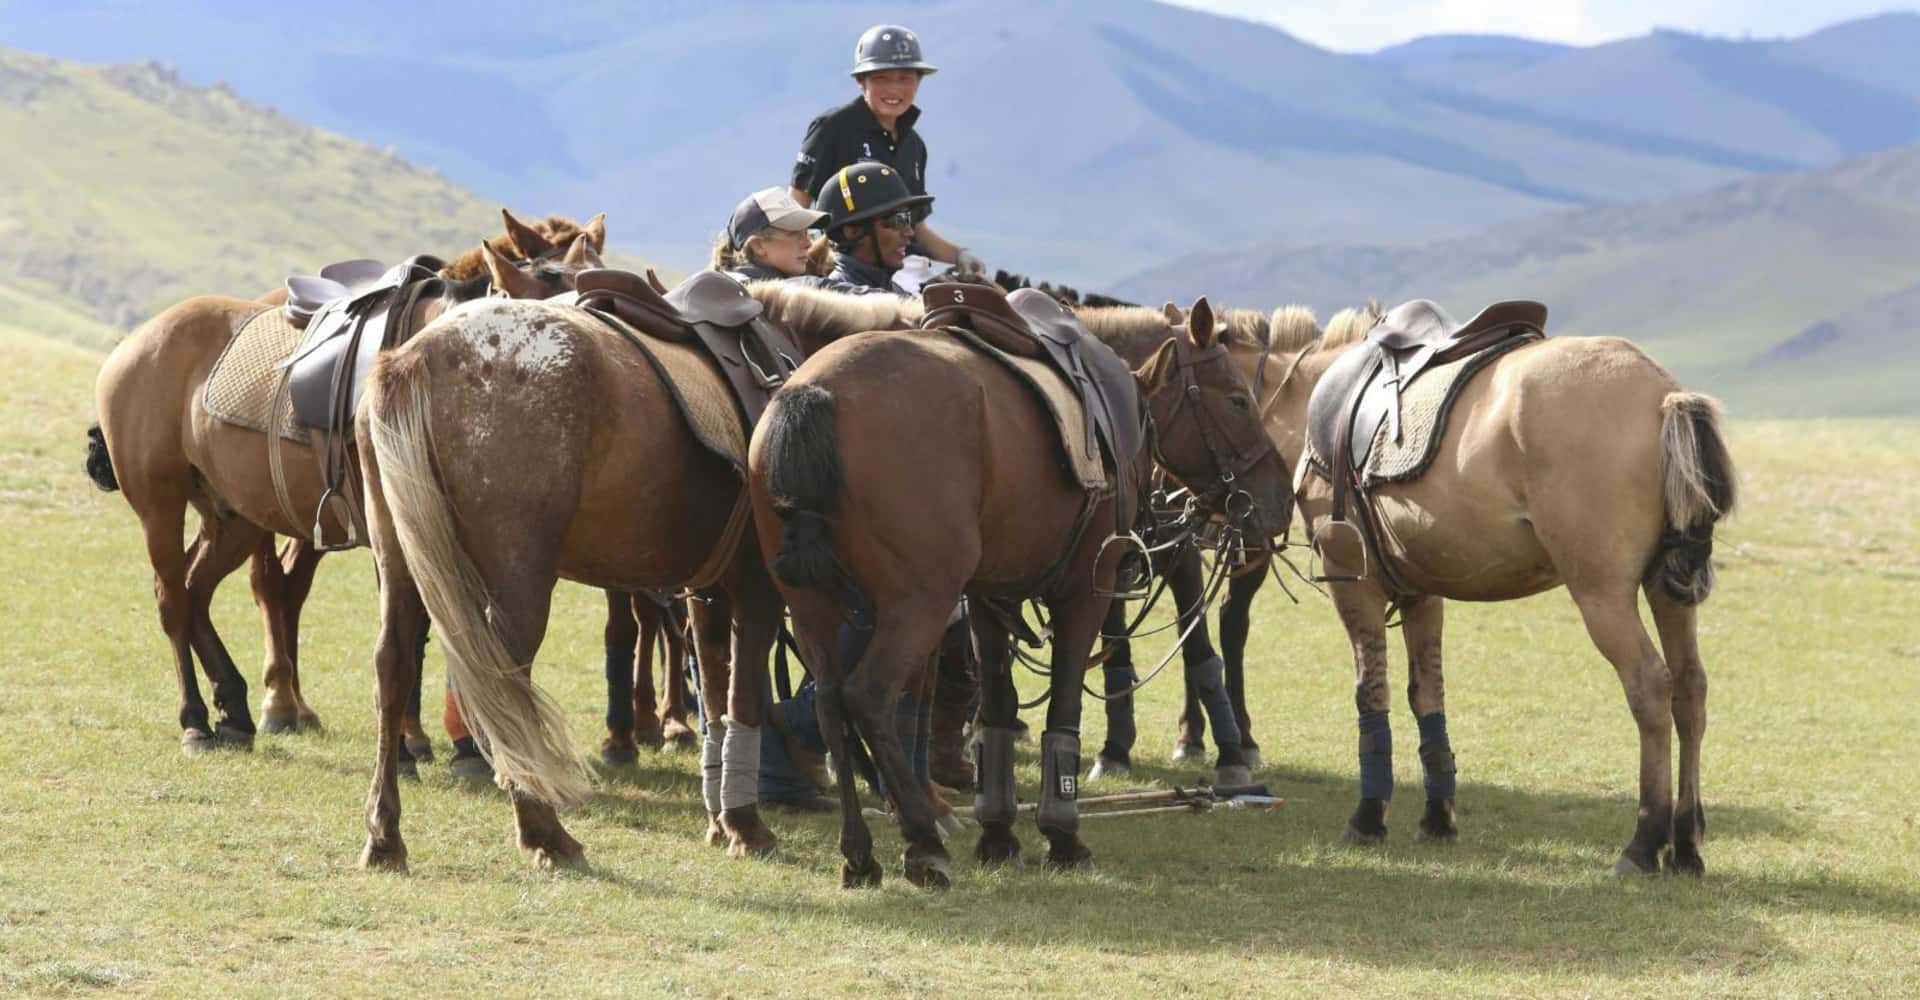 HORSE RIDING - The Pavilions Mongolia